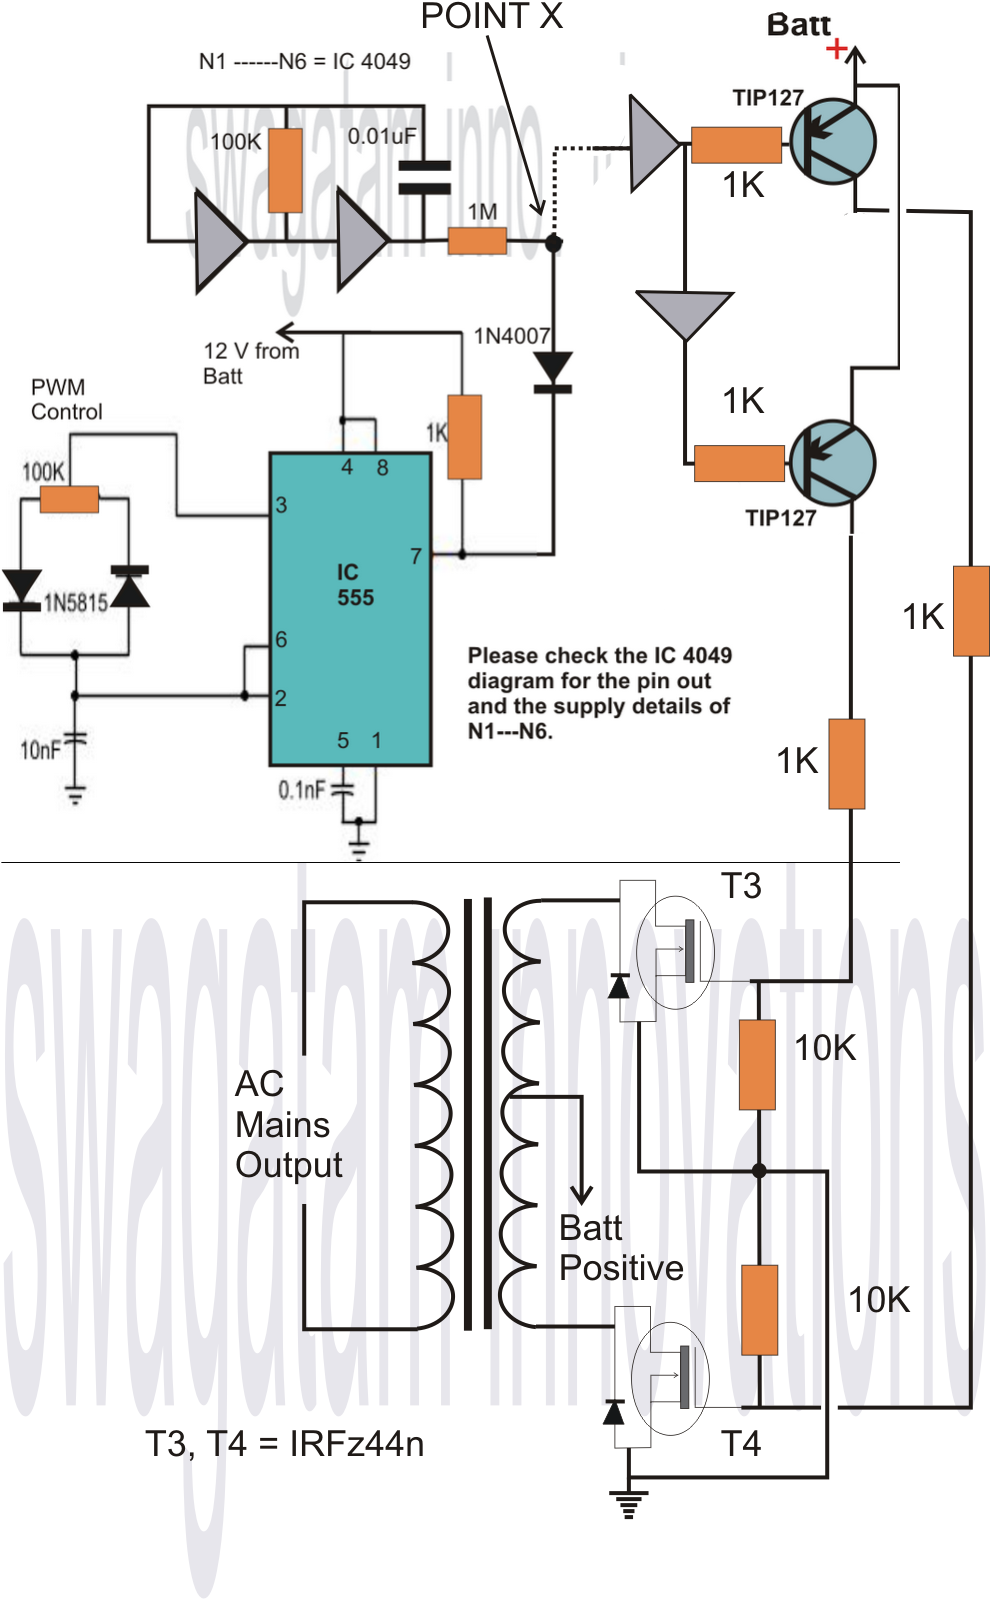 Homemade VA Power Inverter Circuit - Circuit diagram of an inverter